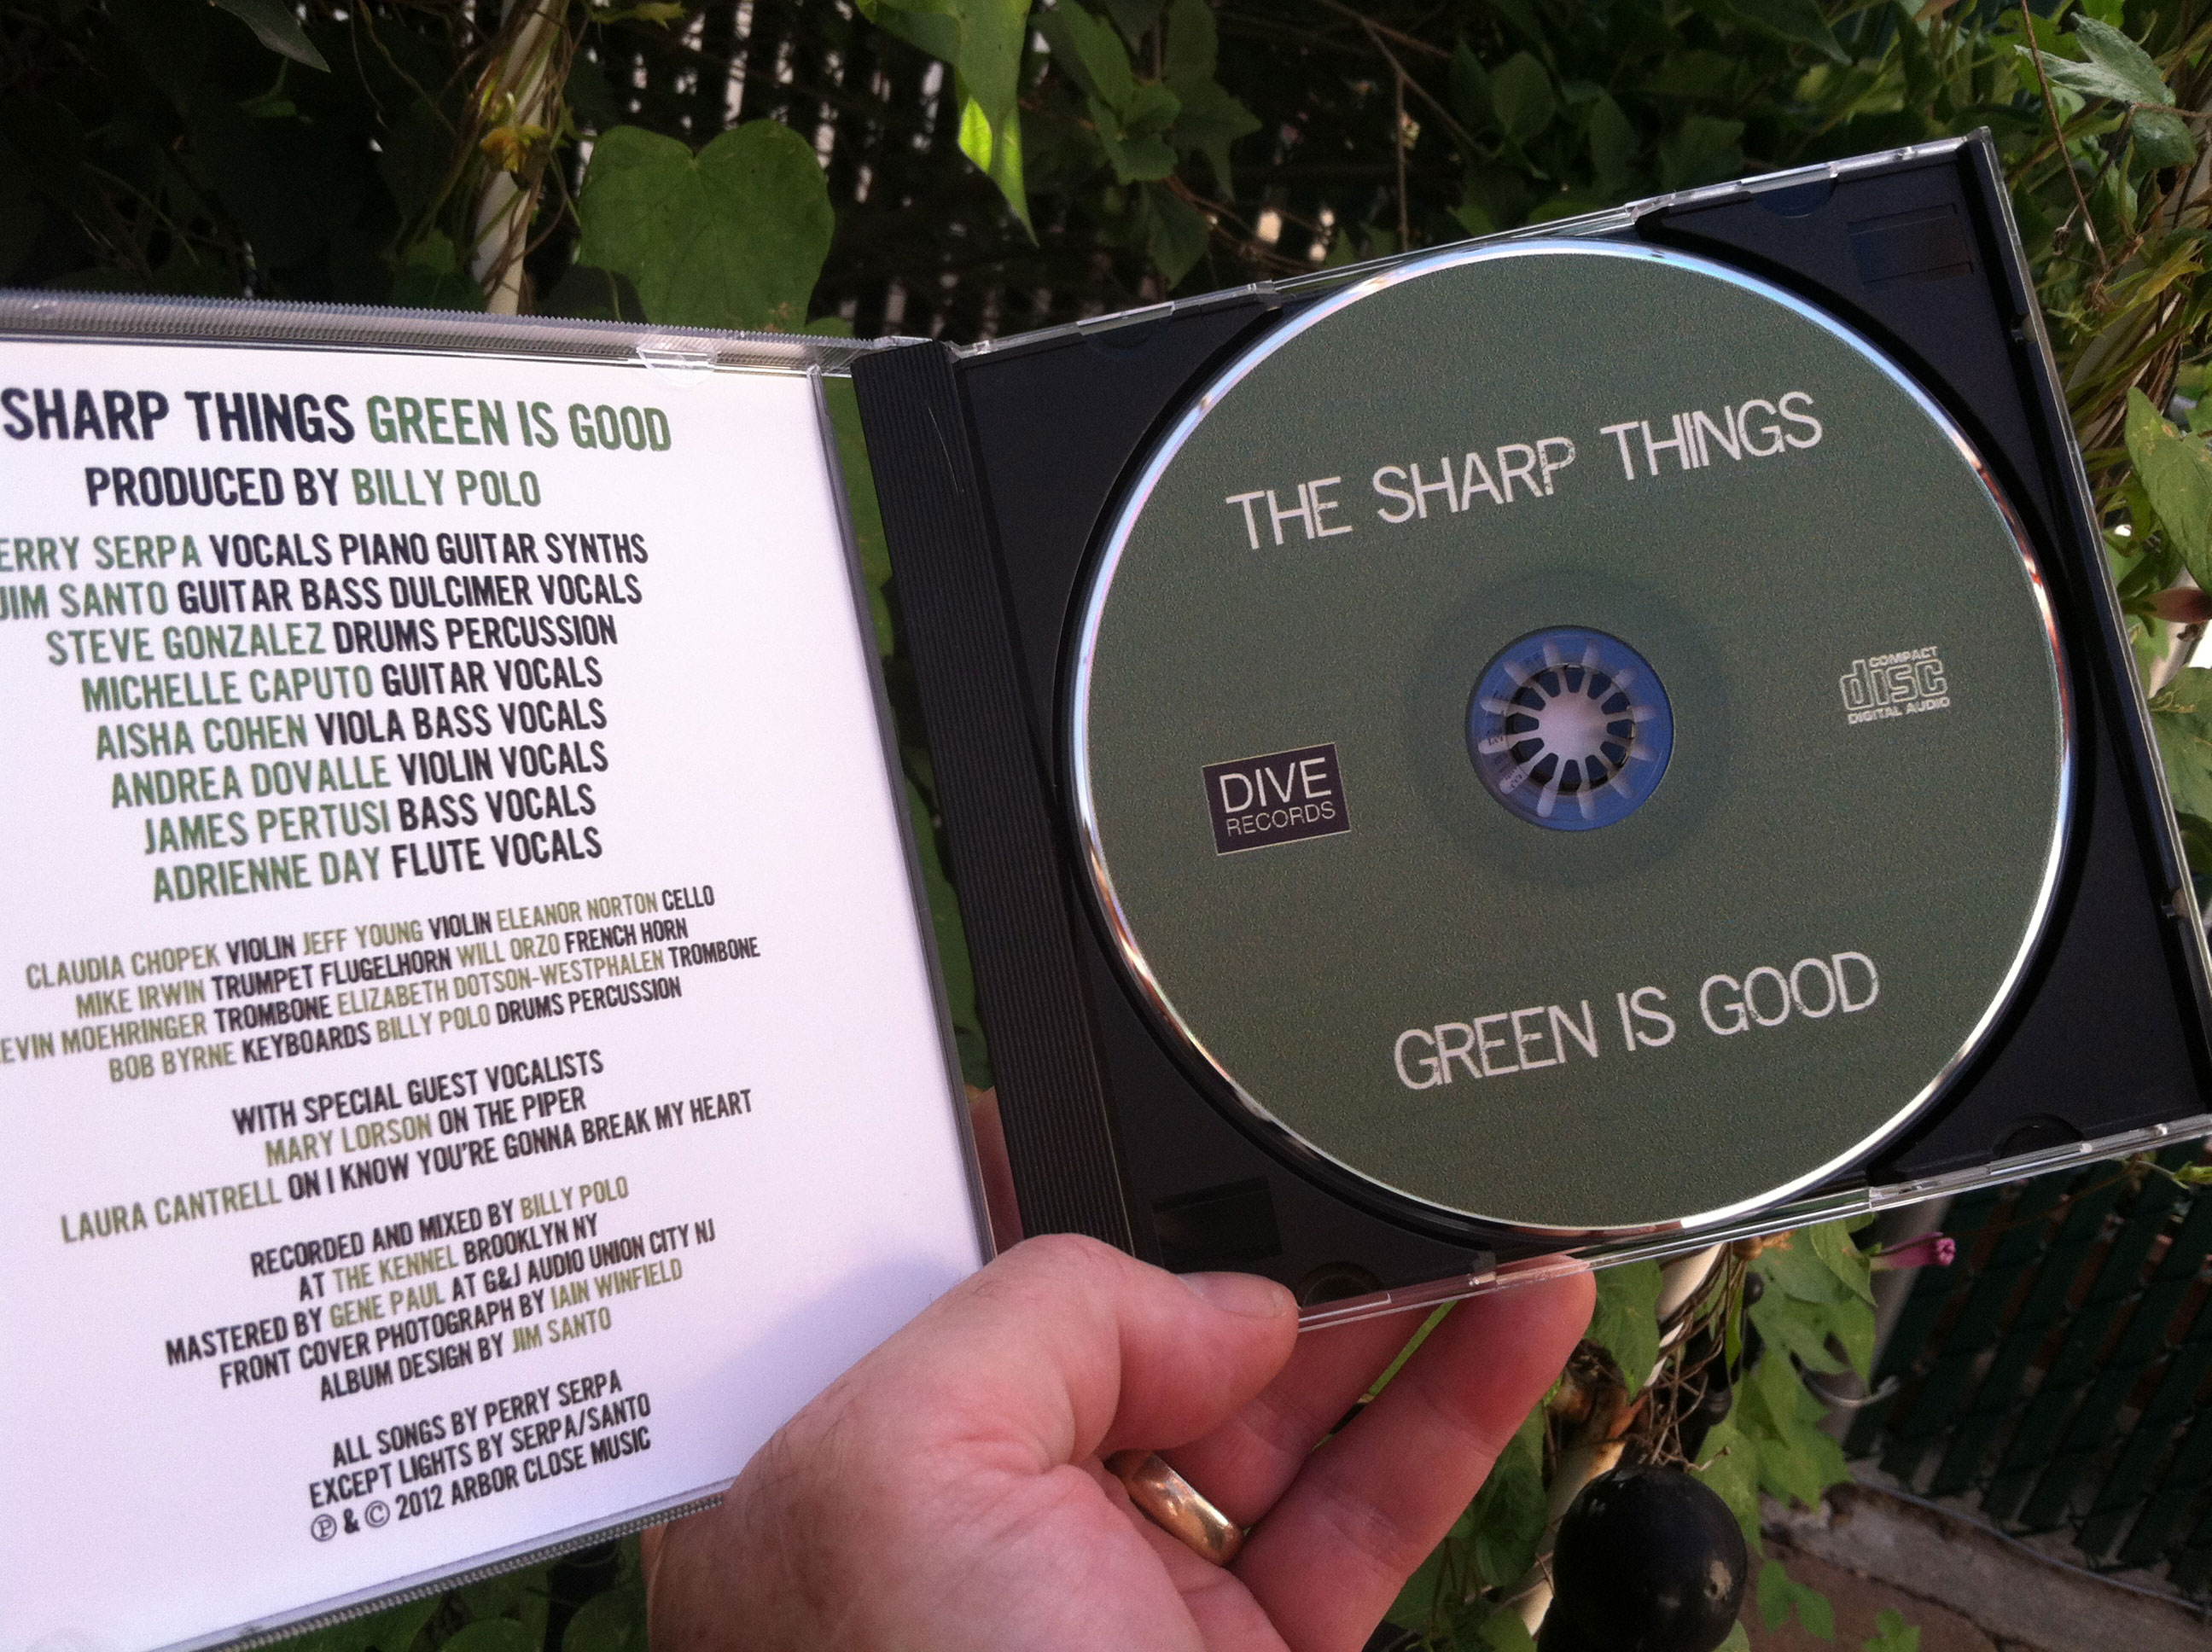 The Green Is Good CD inside